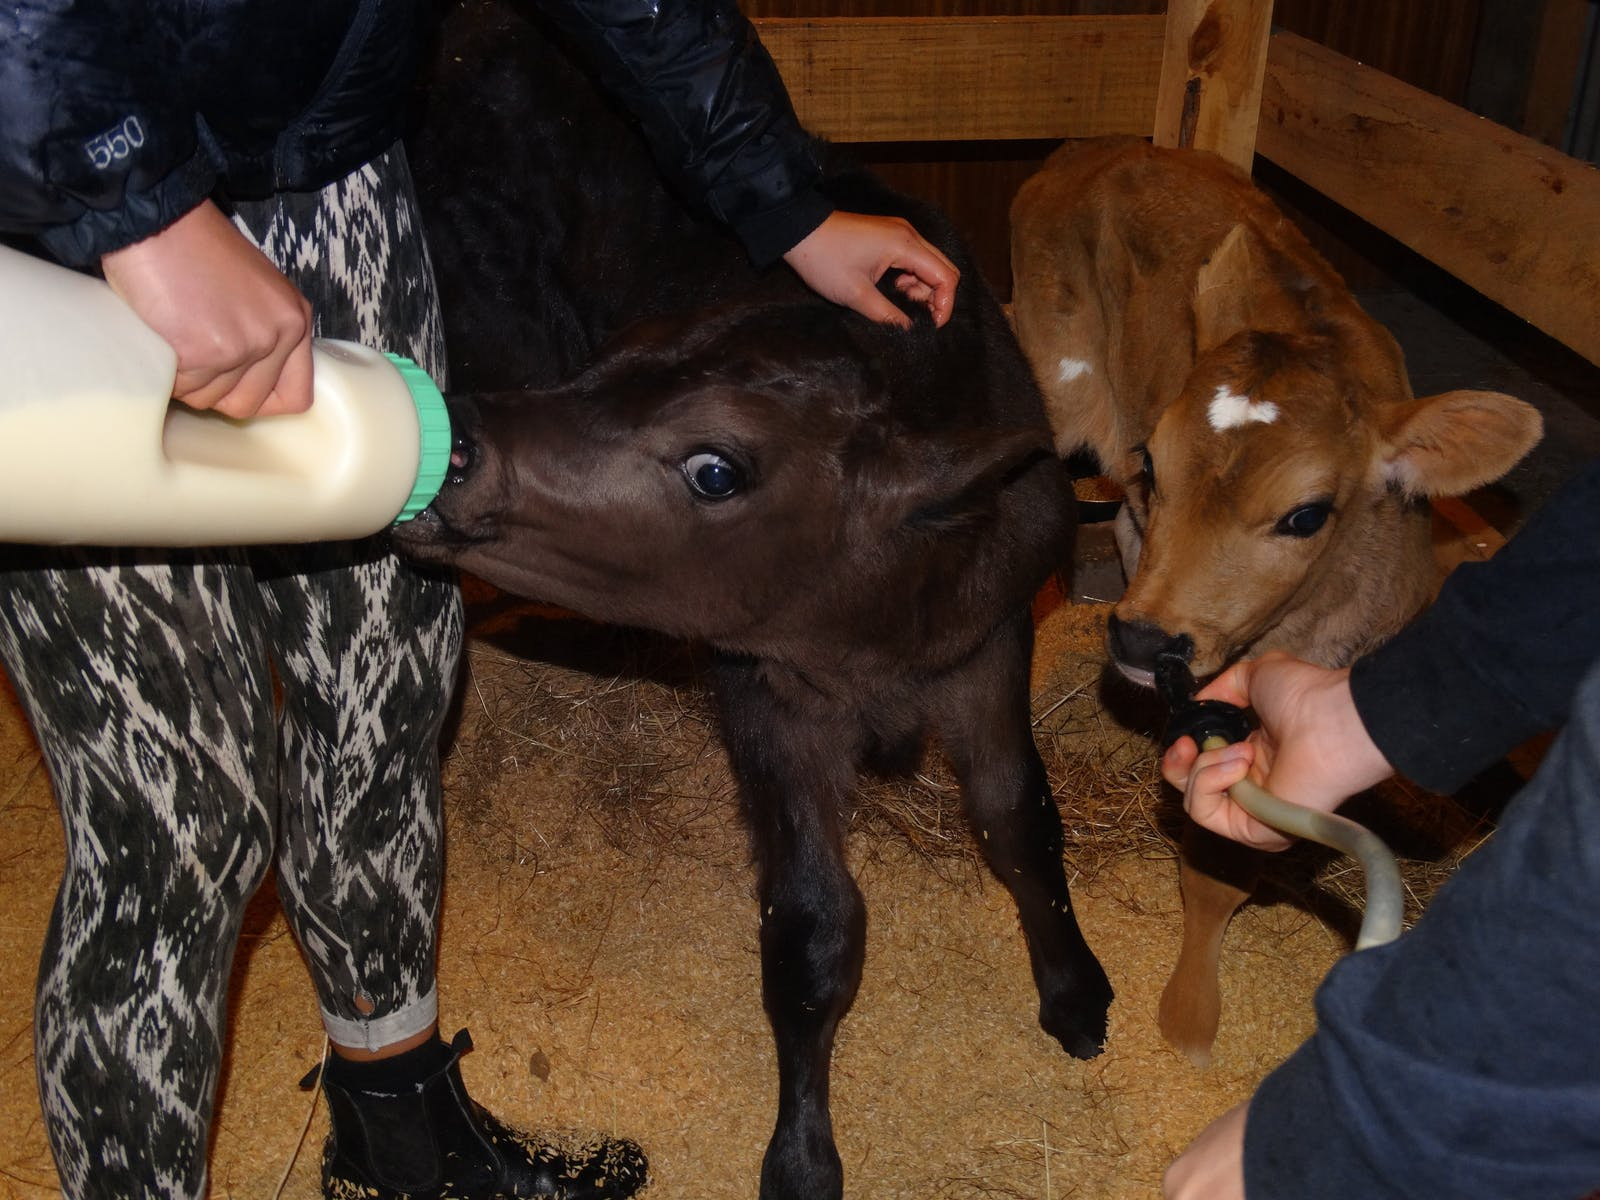 Feeding baby calves in the animal nursery